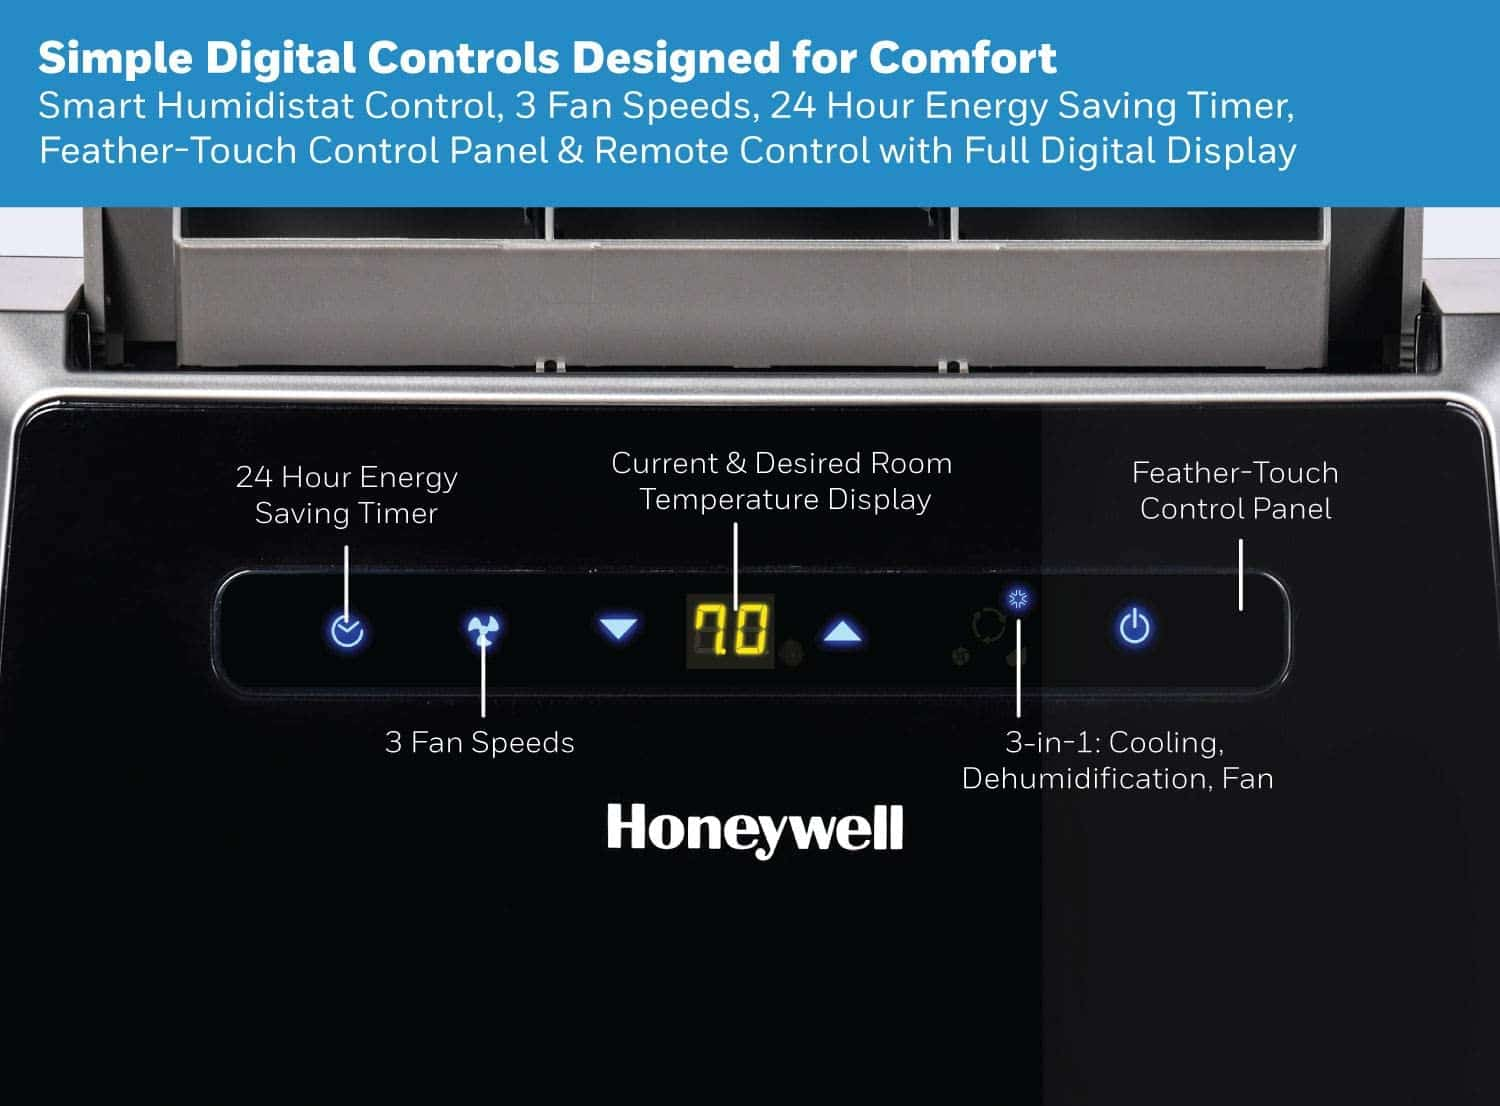 Honeywell Condition MN12CES 12,000 BTU Portable Air Conditioner Review